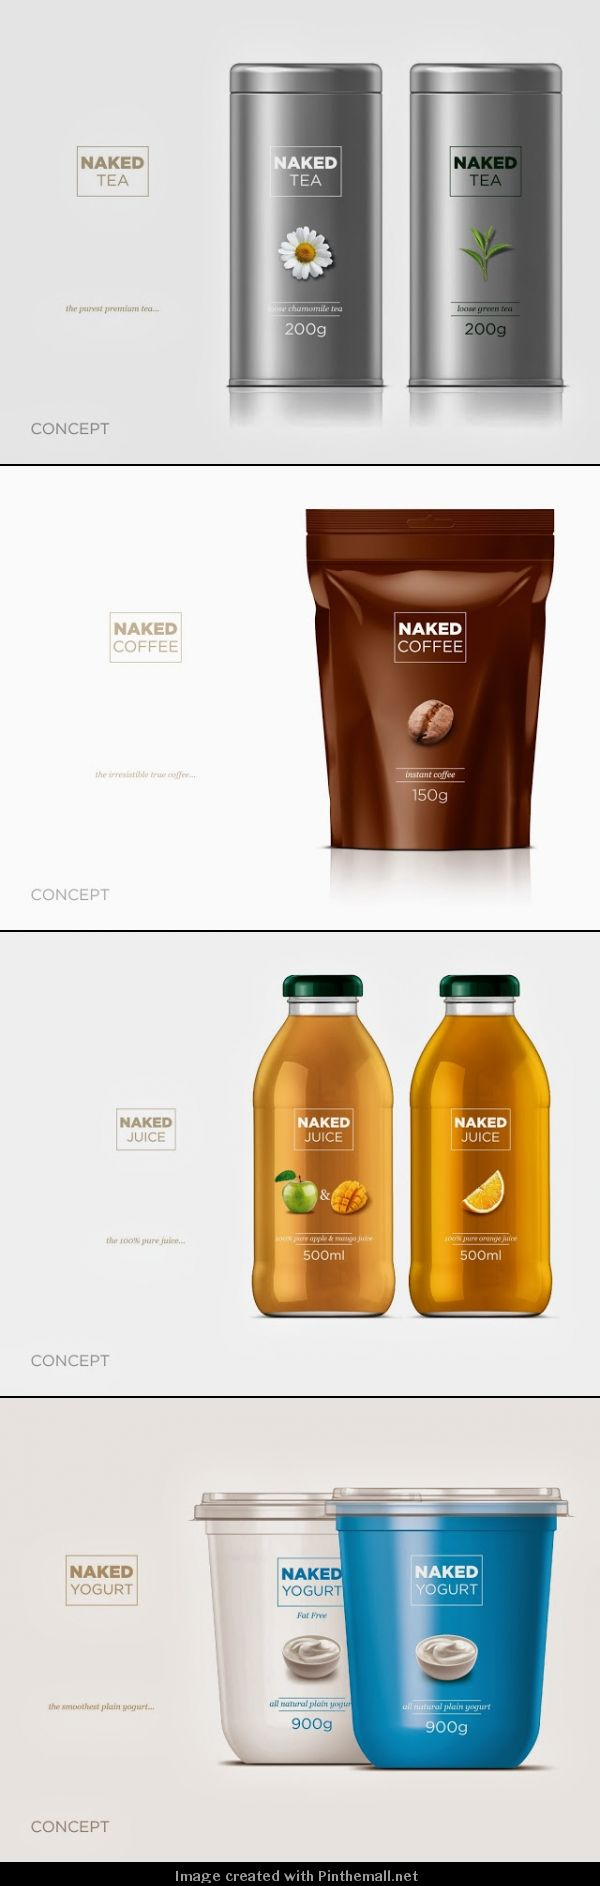 NAKED (Concept)   Horea Grindean. Lets all get naked, #packaging that is : ) PD